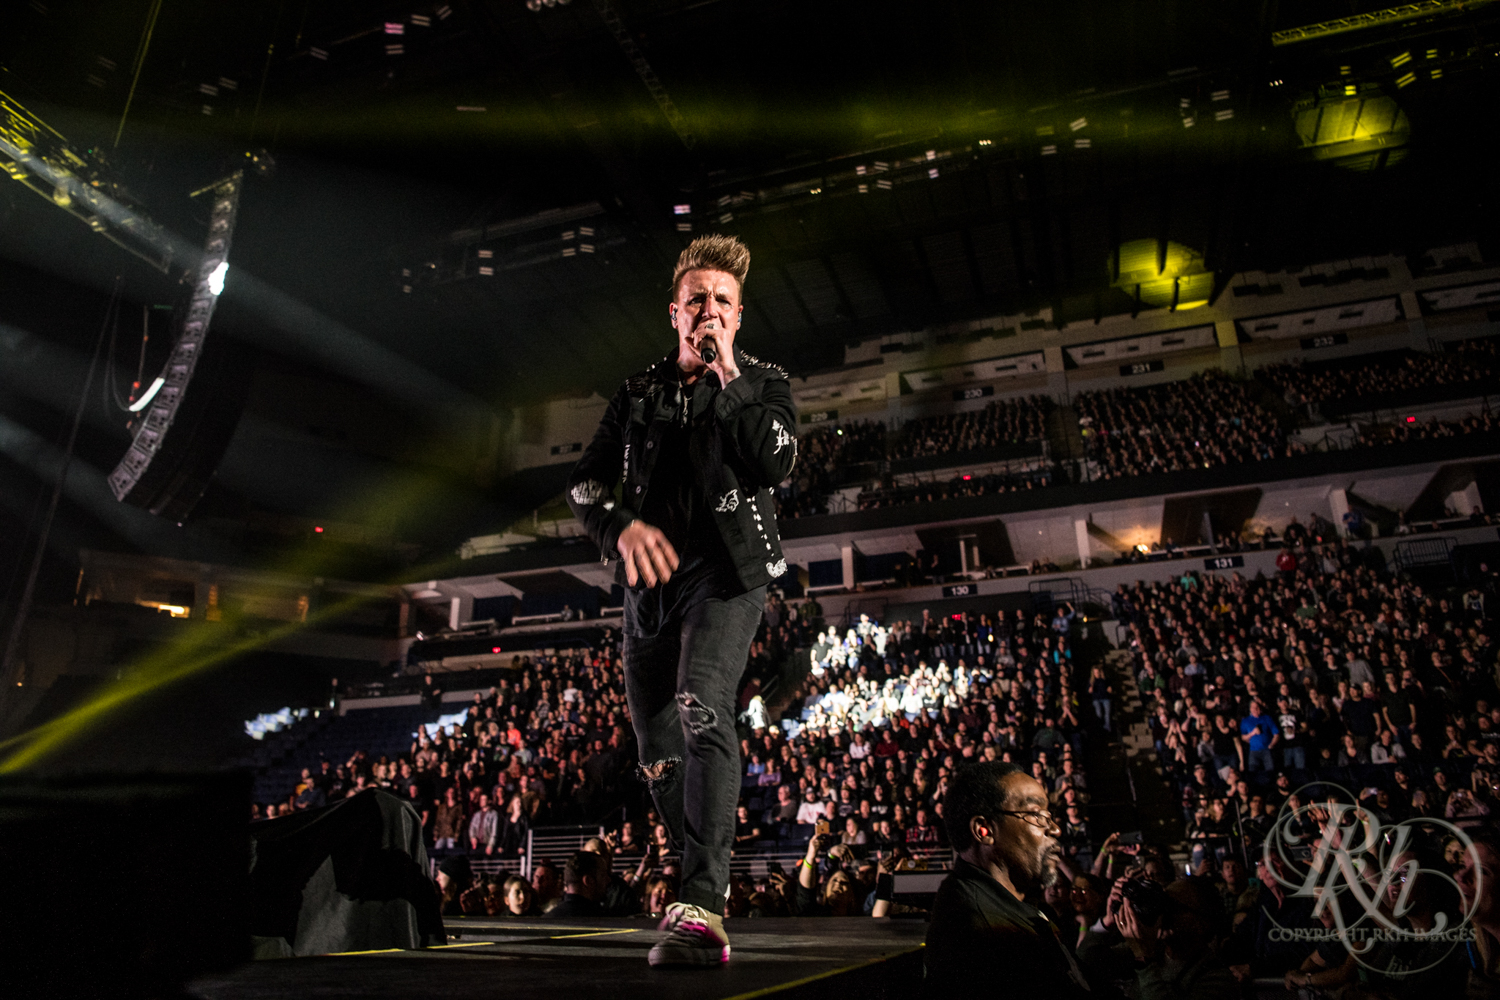 Papa Roach - Minnesota Concert Photography - Target Center - Minneapolis - RKH Images (12 of 16).jpg